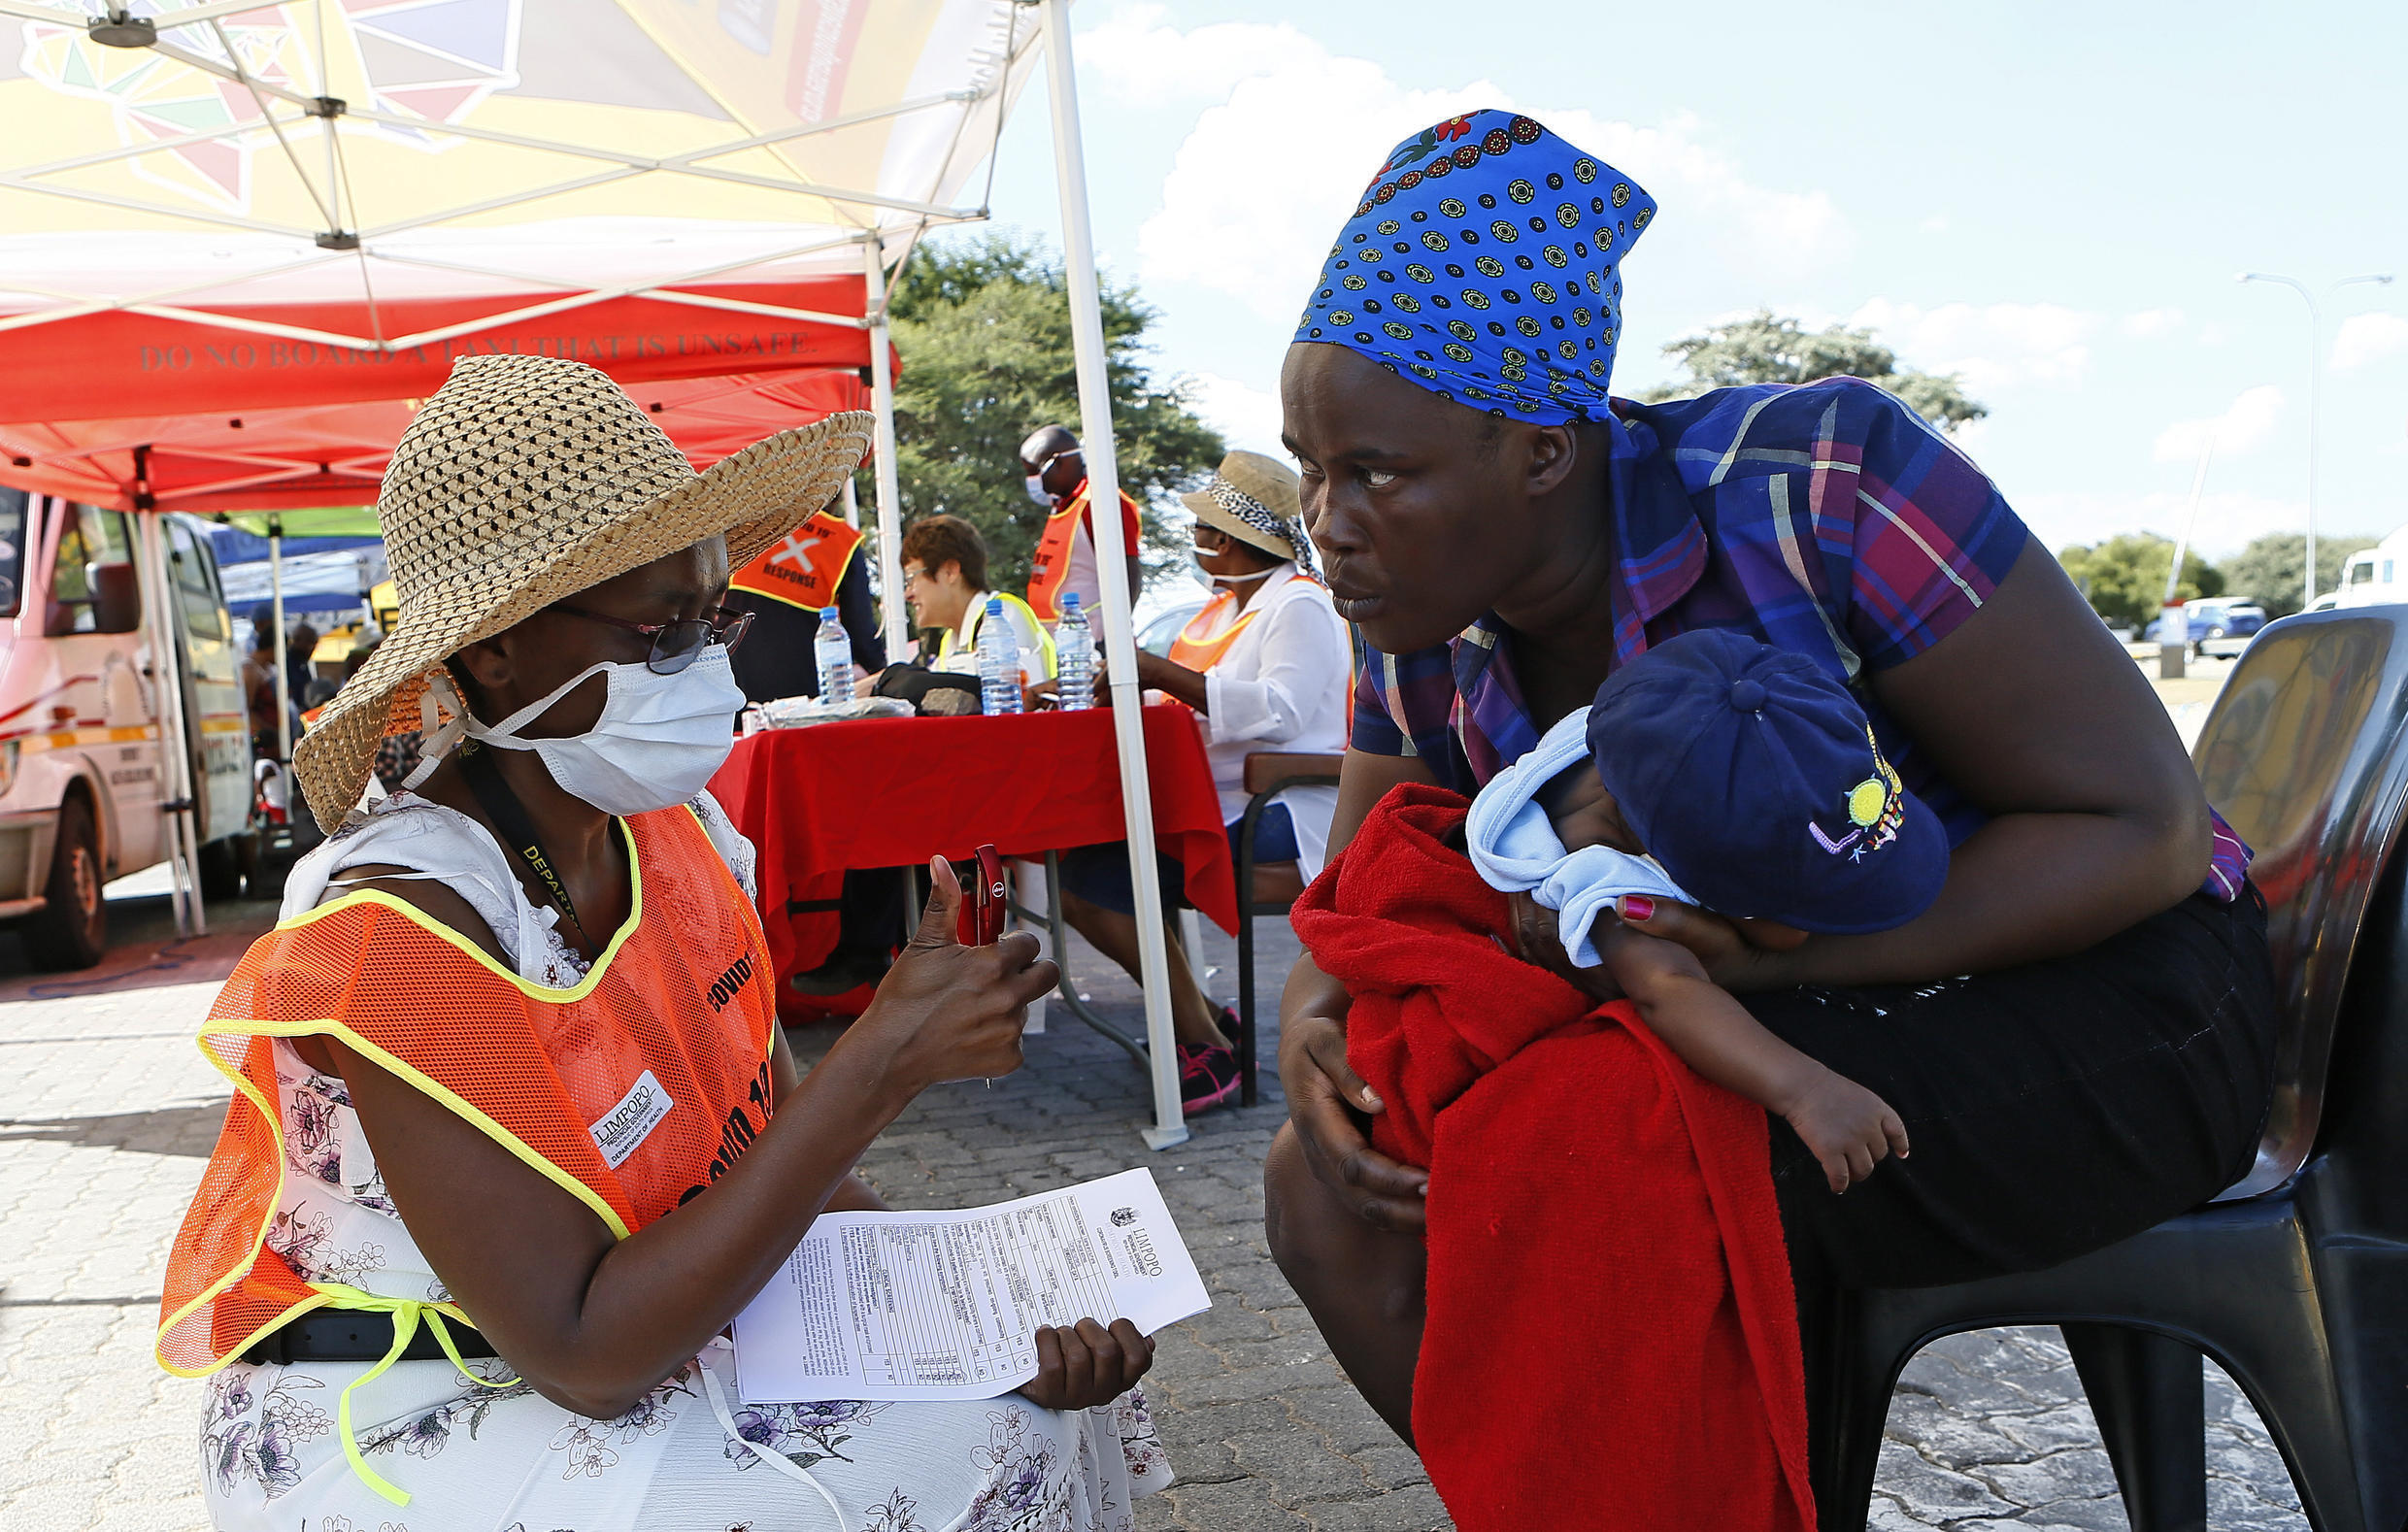 A Limpopo provincial health official gives a thumbs up after conducting a screening test on a traveller carrying a baby while making her way from Gauteng to Limpopo ahead of the nationwide lockdown in South Africa on March 25, 2020.